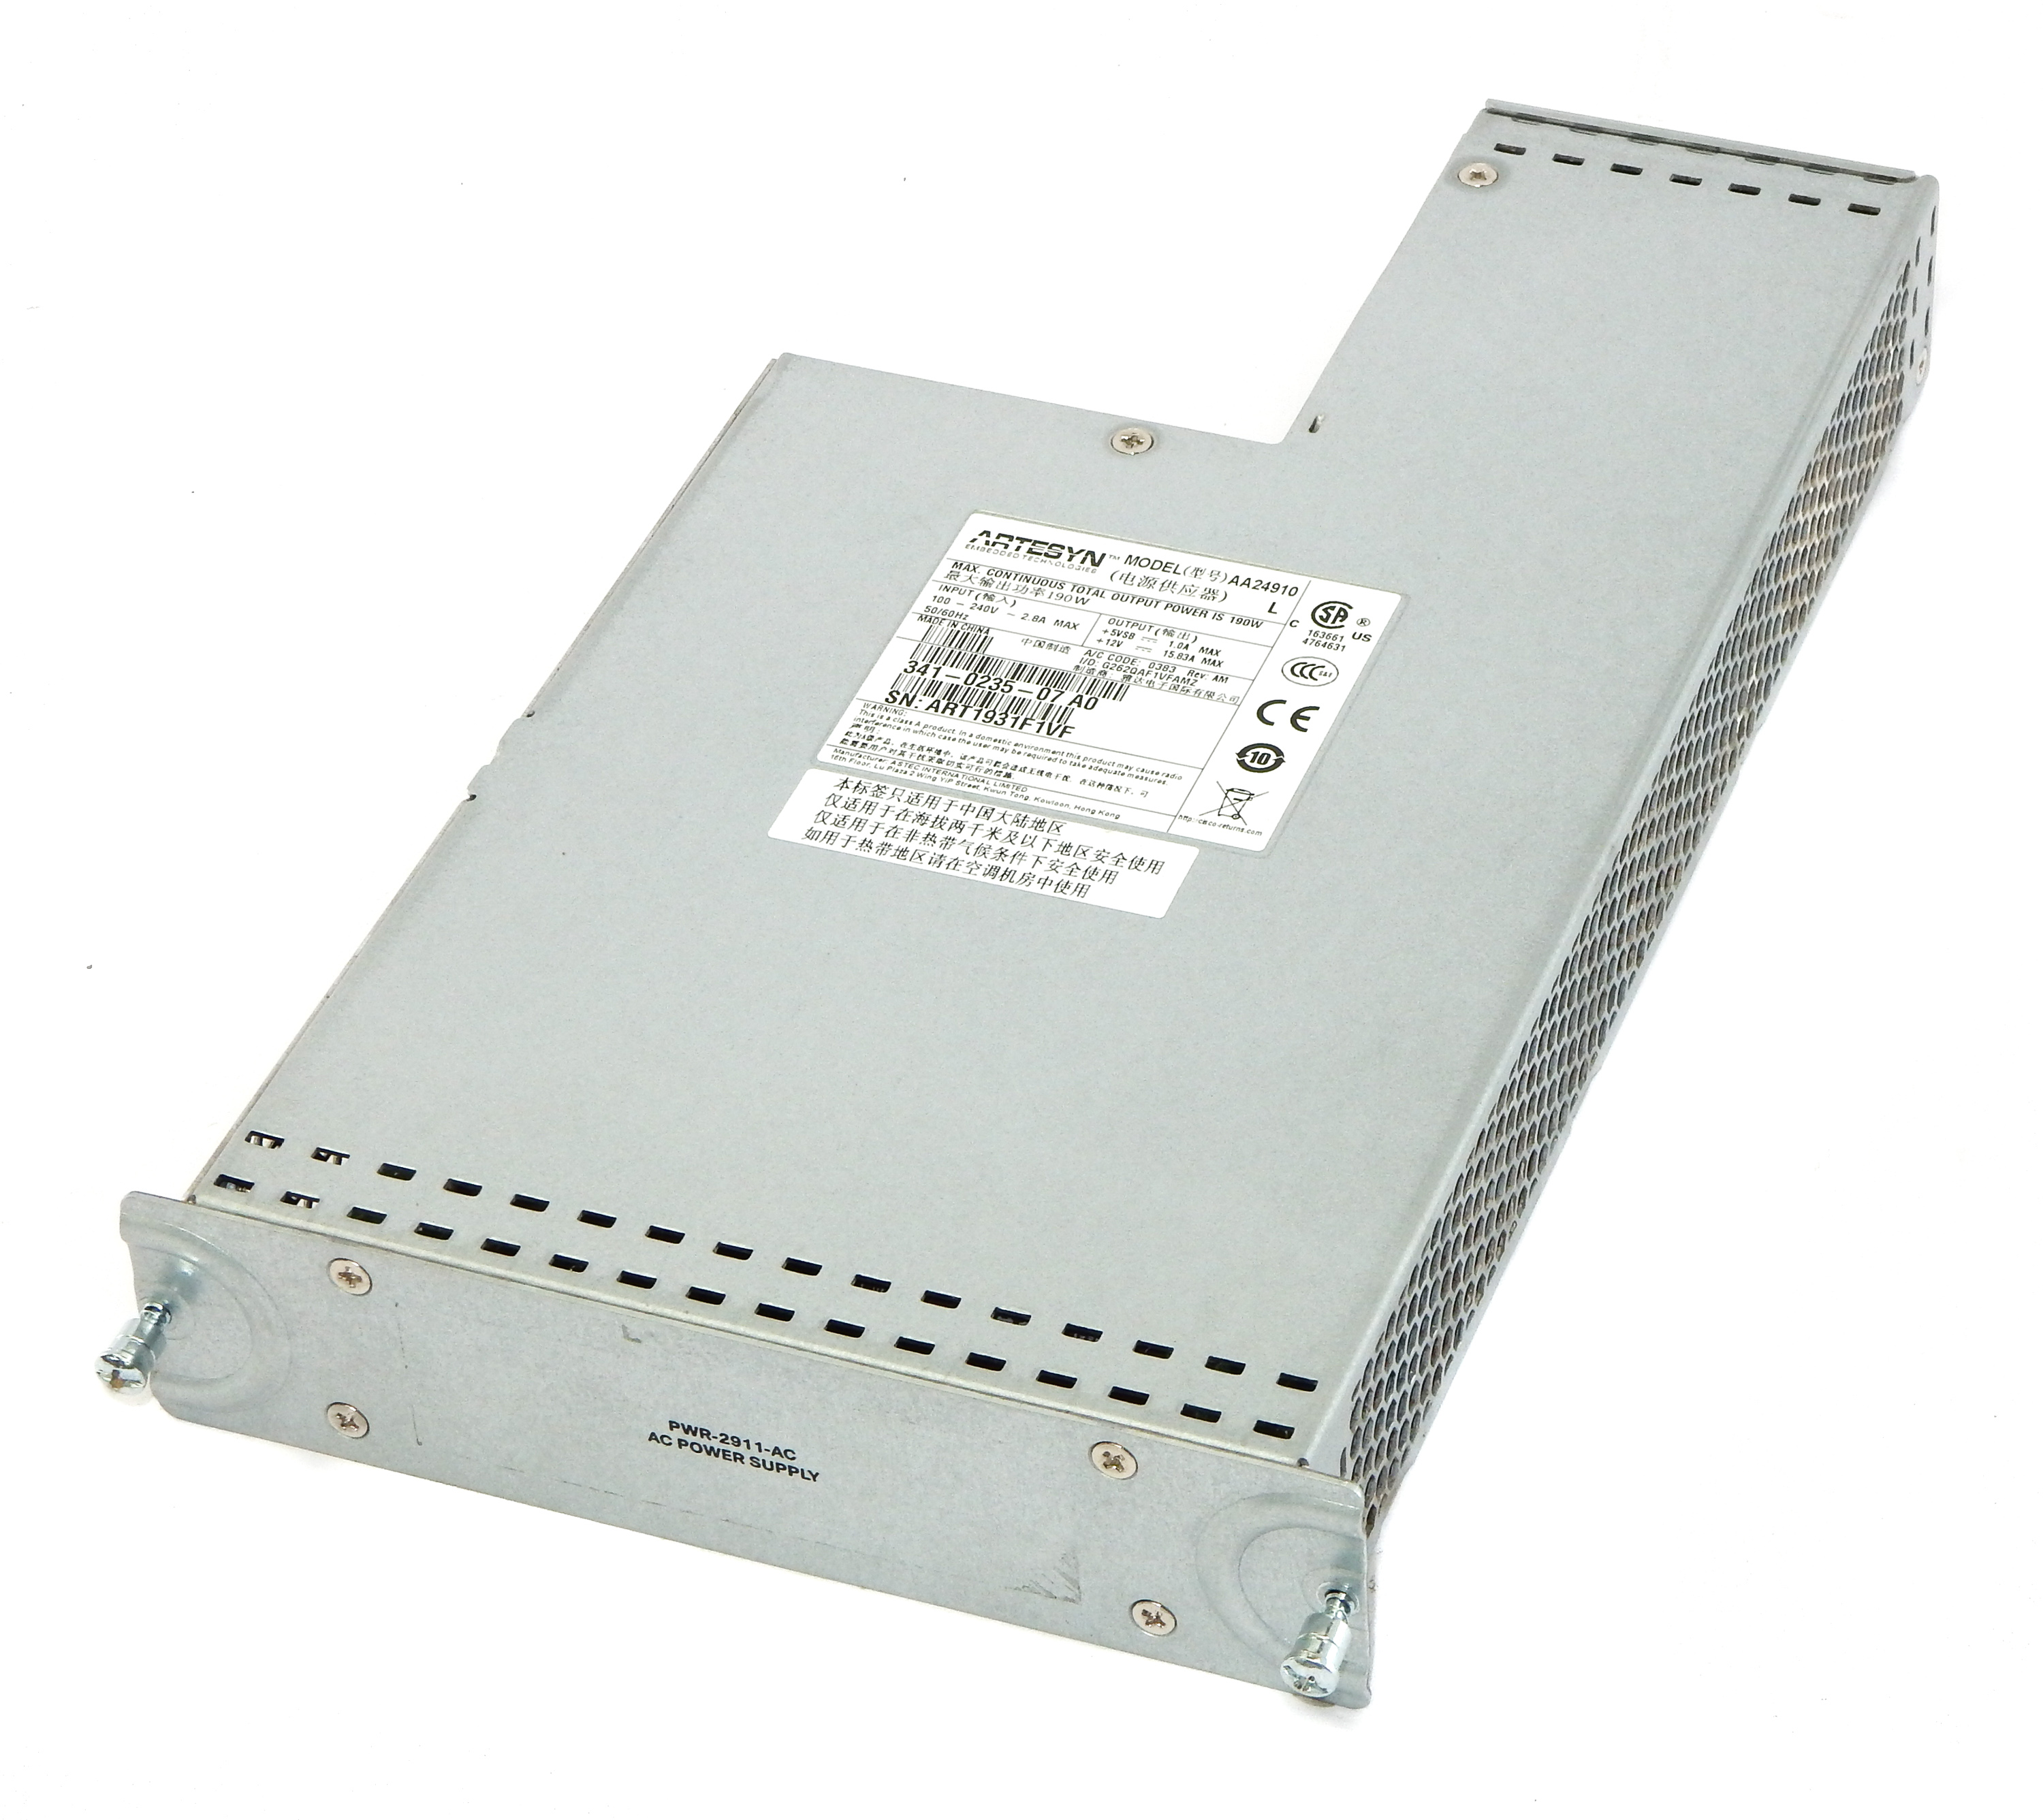 Cisco PWR-2911-AC 190W Power Supply For 2911(CISCO2911/K9) Router